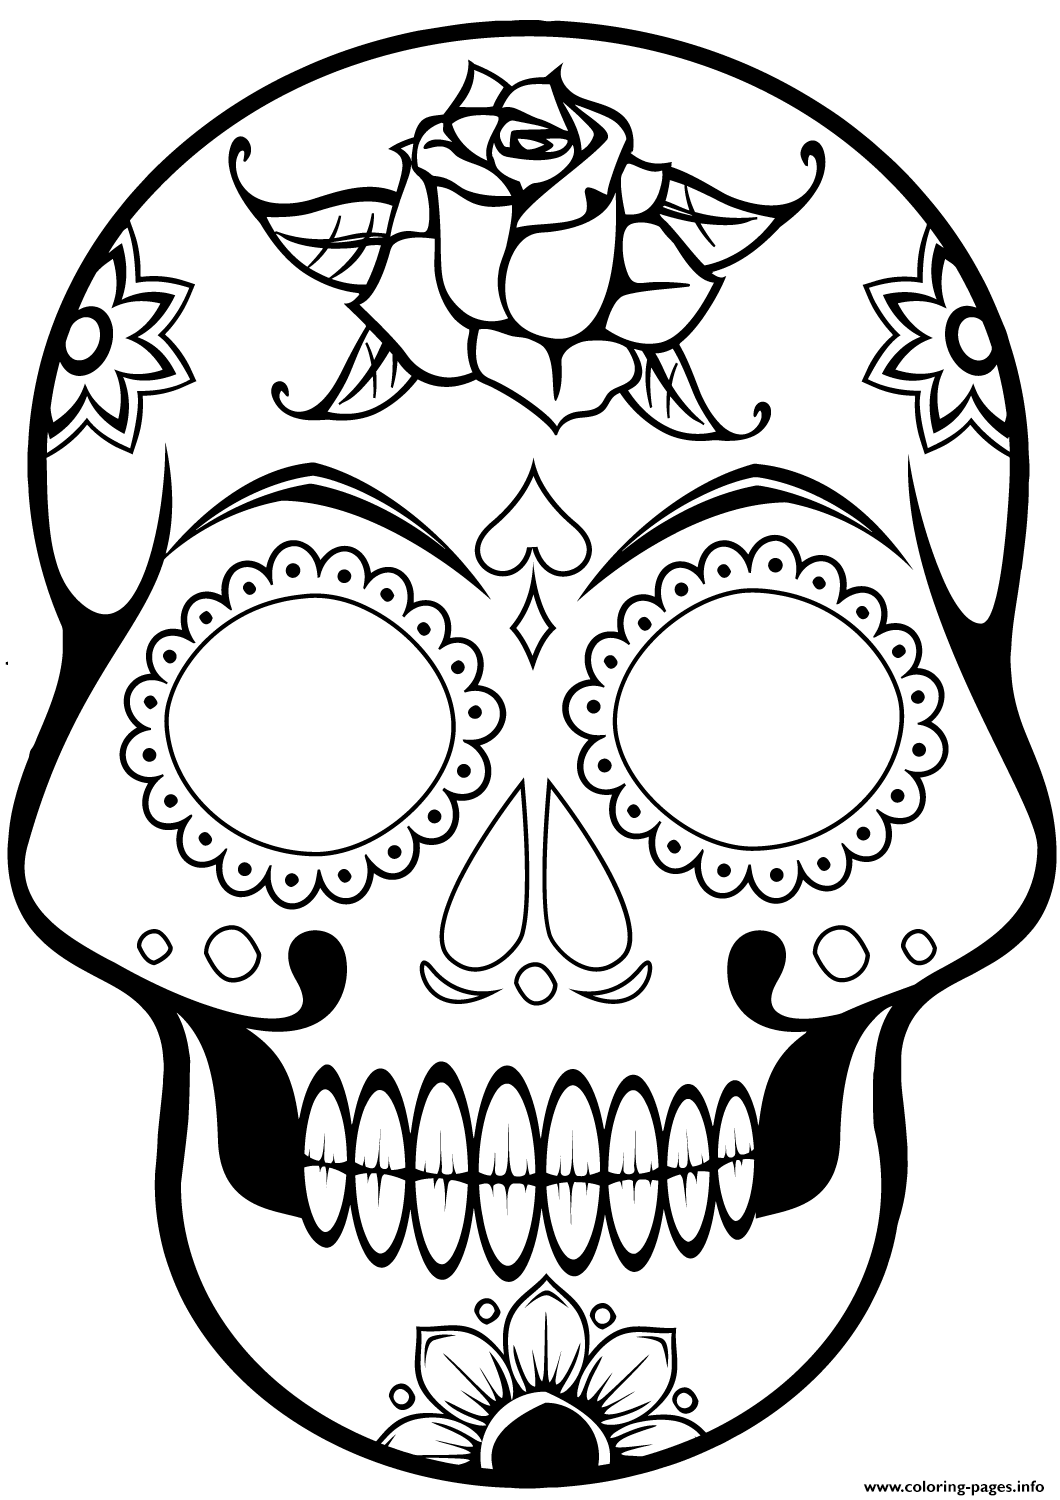 cute sugar skull coloring pages day of the dead sugar skull coloring page free printable cute sugar coloring pages skull